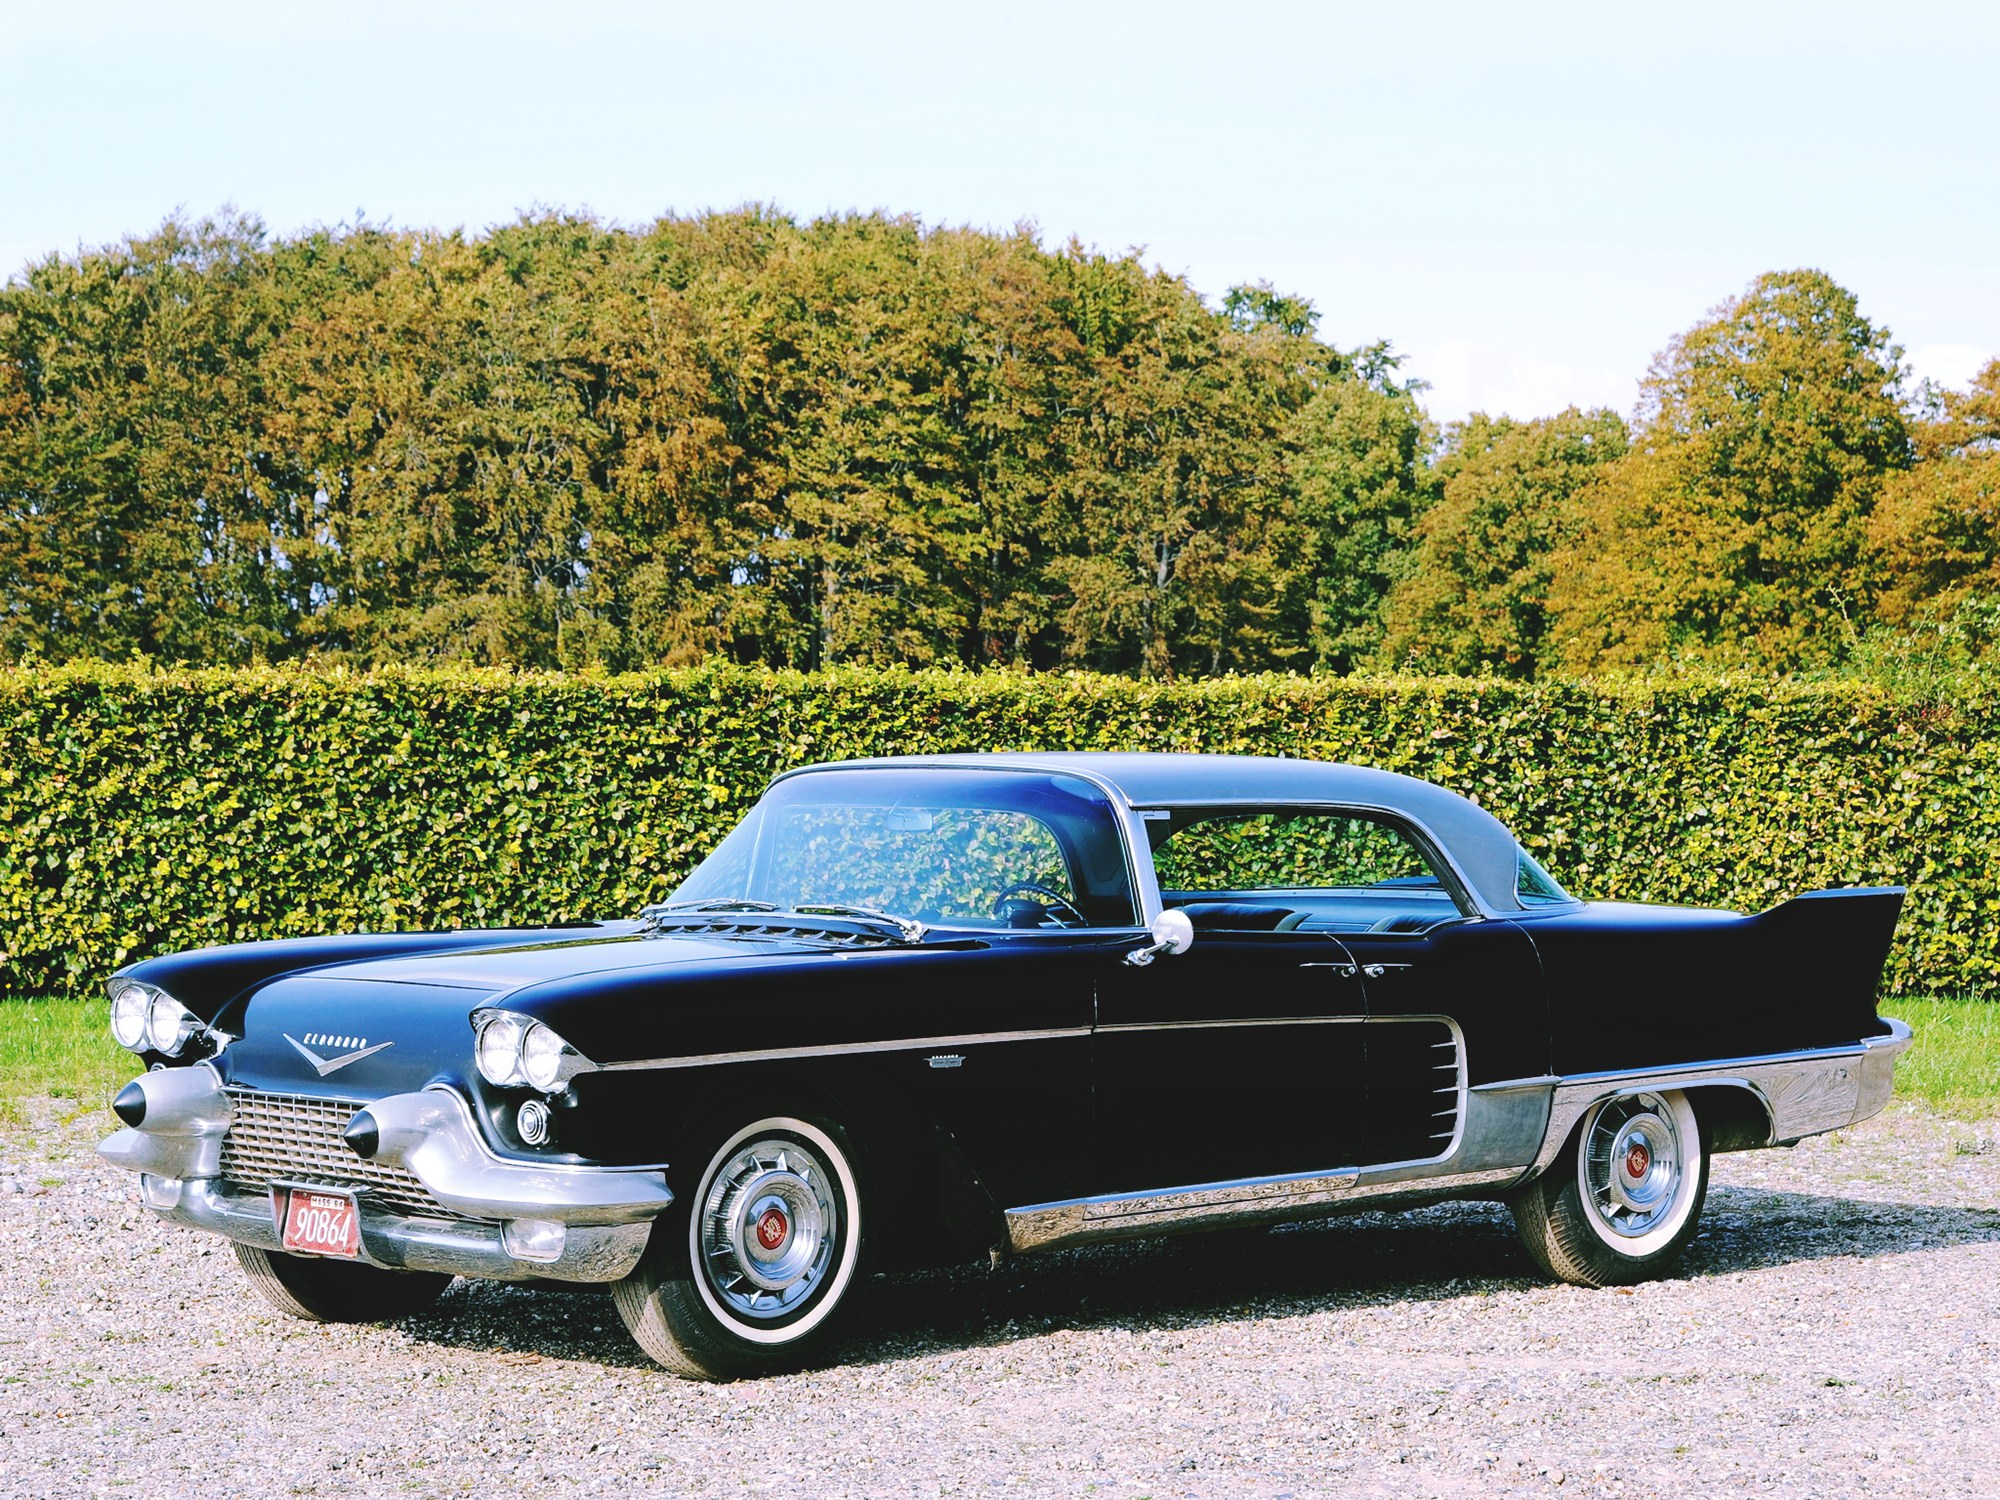 High Resolution Wallpaper | 1958 Cadillac Eldorado Brougham 2000x1500 px